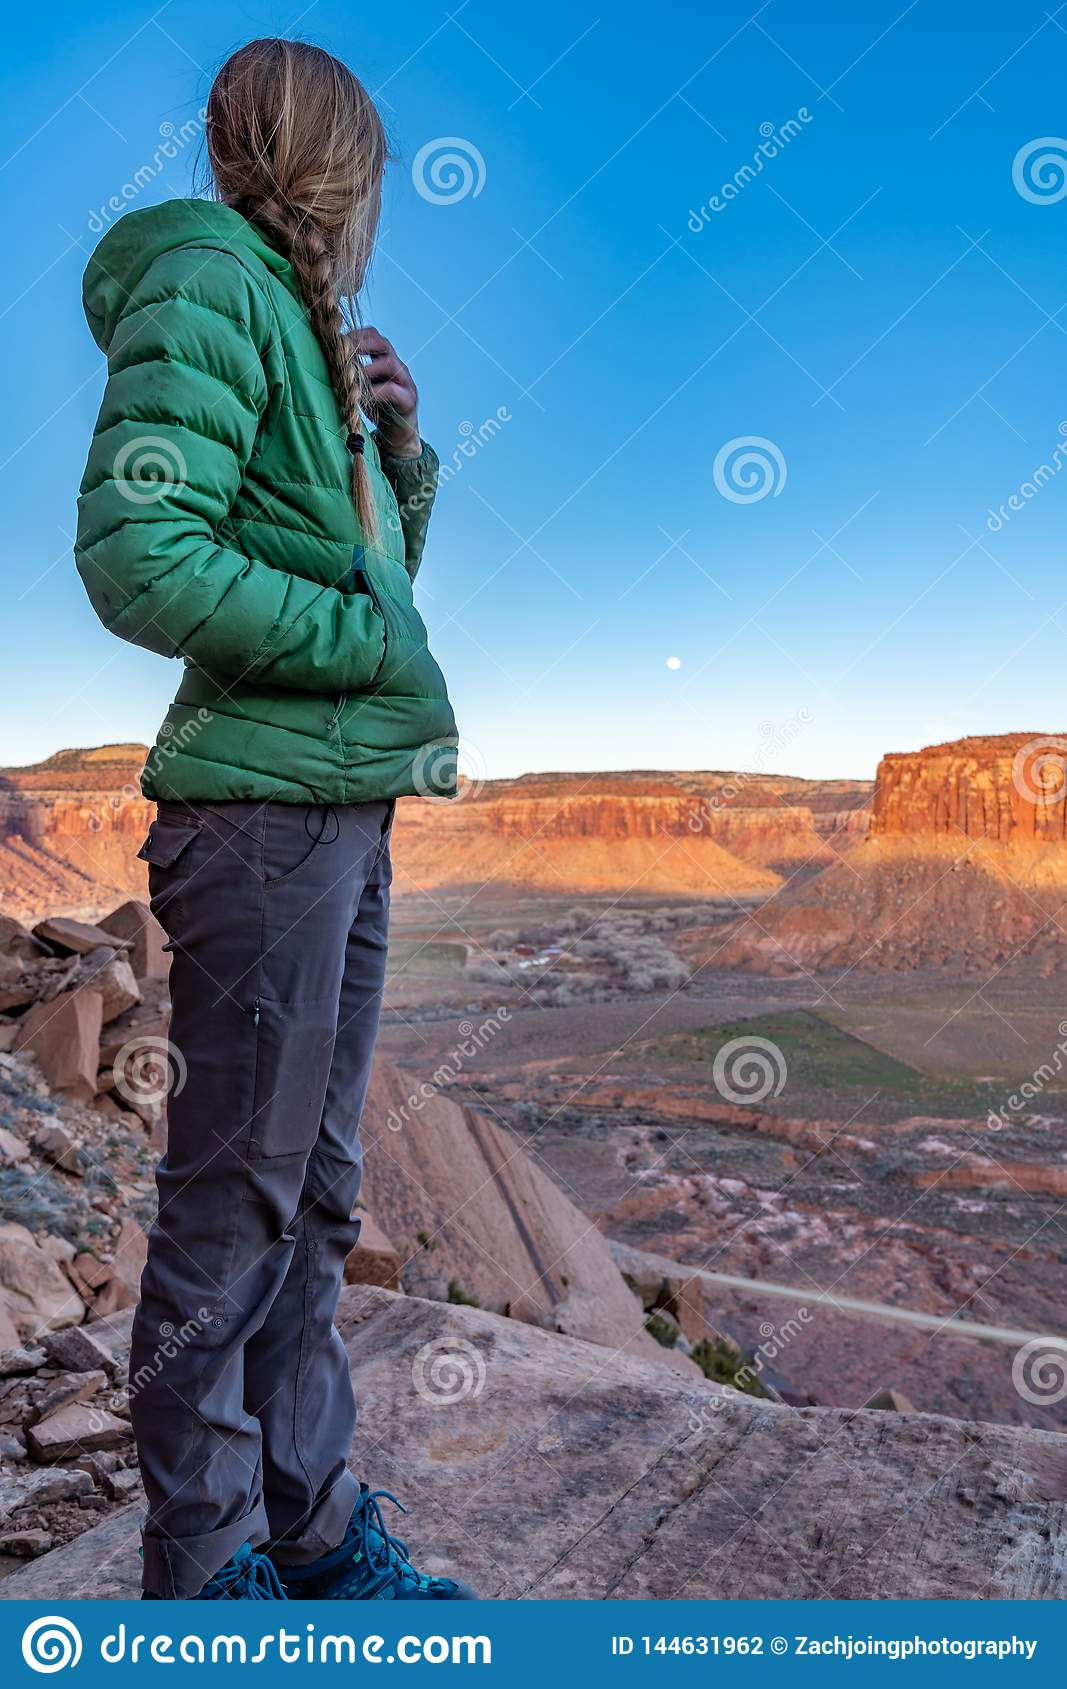 3/21/19 Moab, Utah. Woman watching the moon rise and the sun set, after a long day of rock climbing.